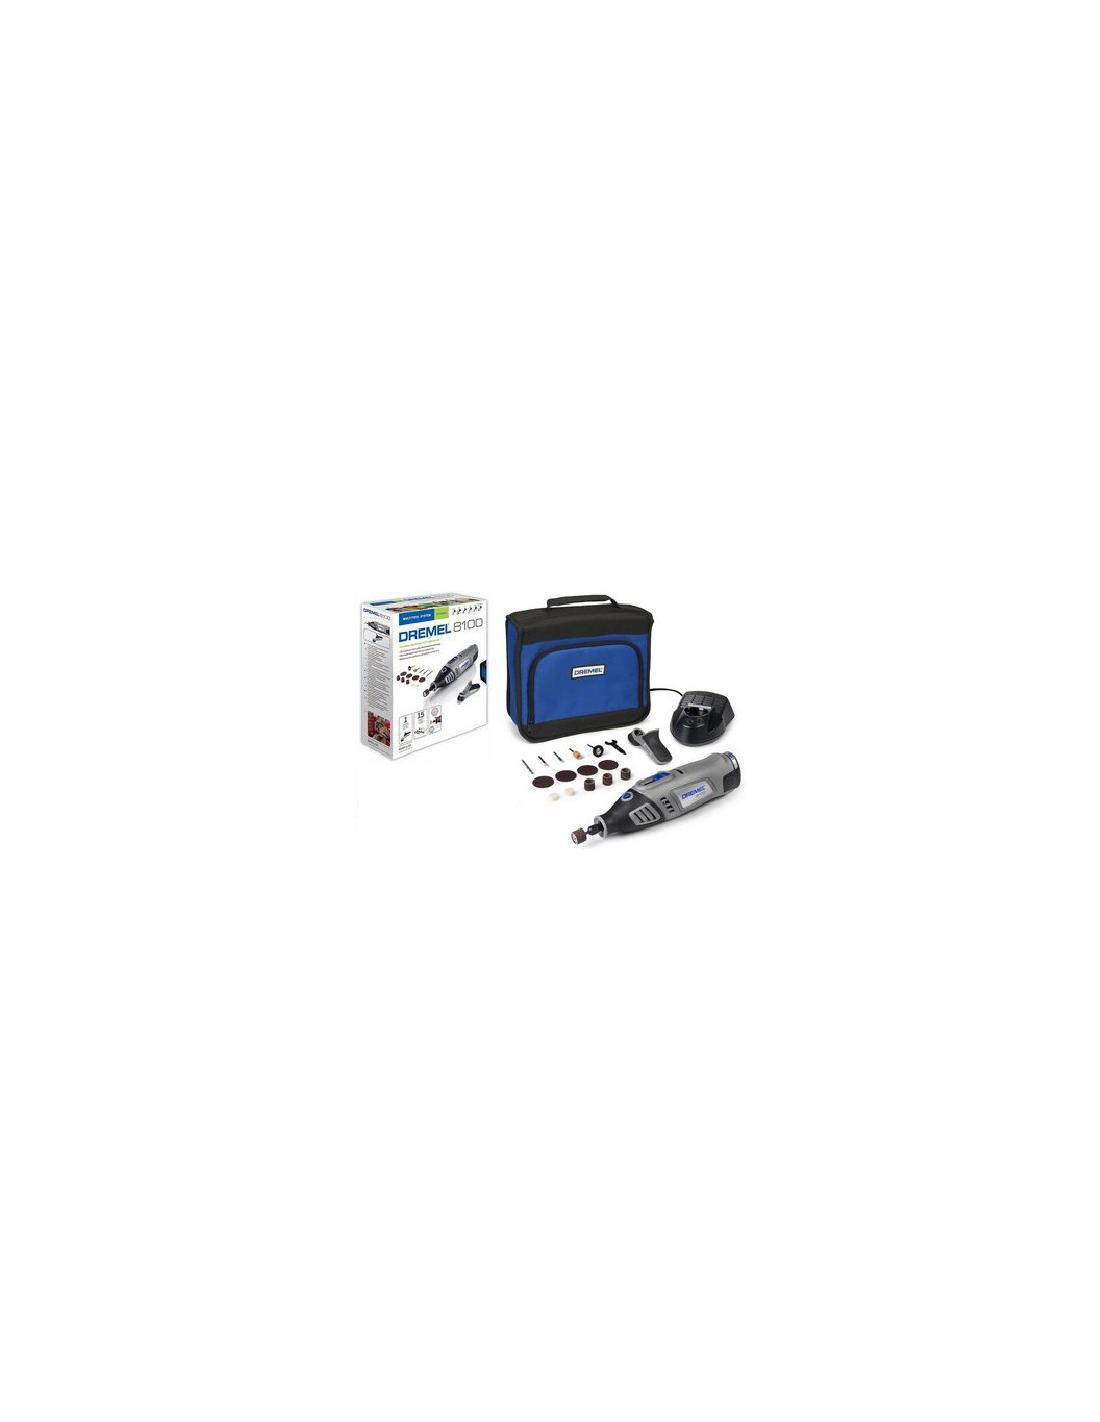 DREMEL MINI PERCEUSE 8100 SANS FIL - 1